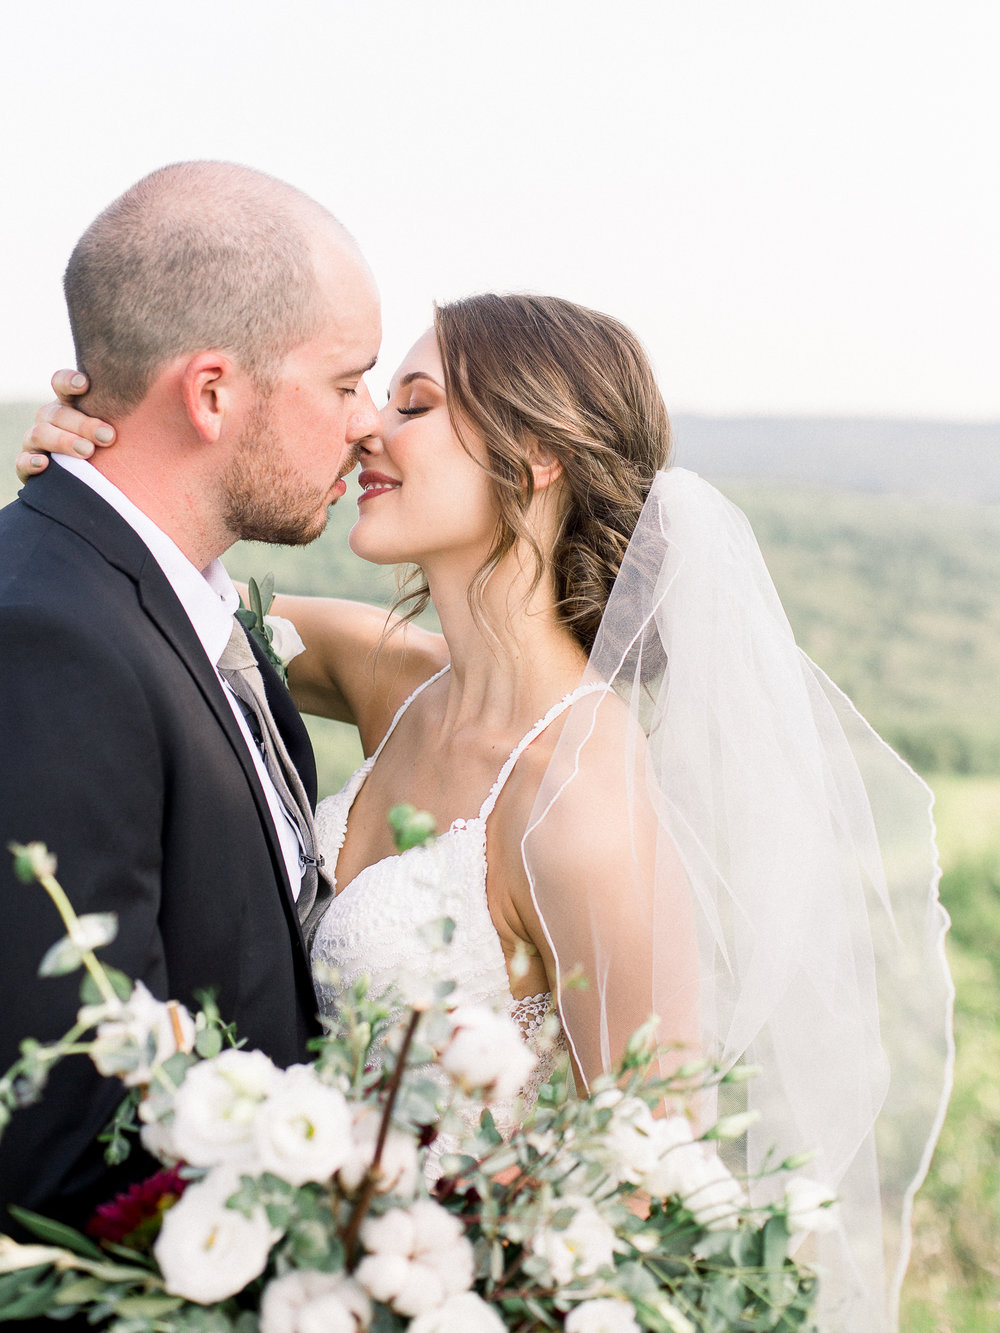 Regan & Dallas | Boho Wedding